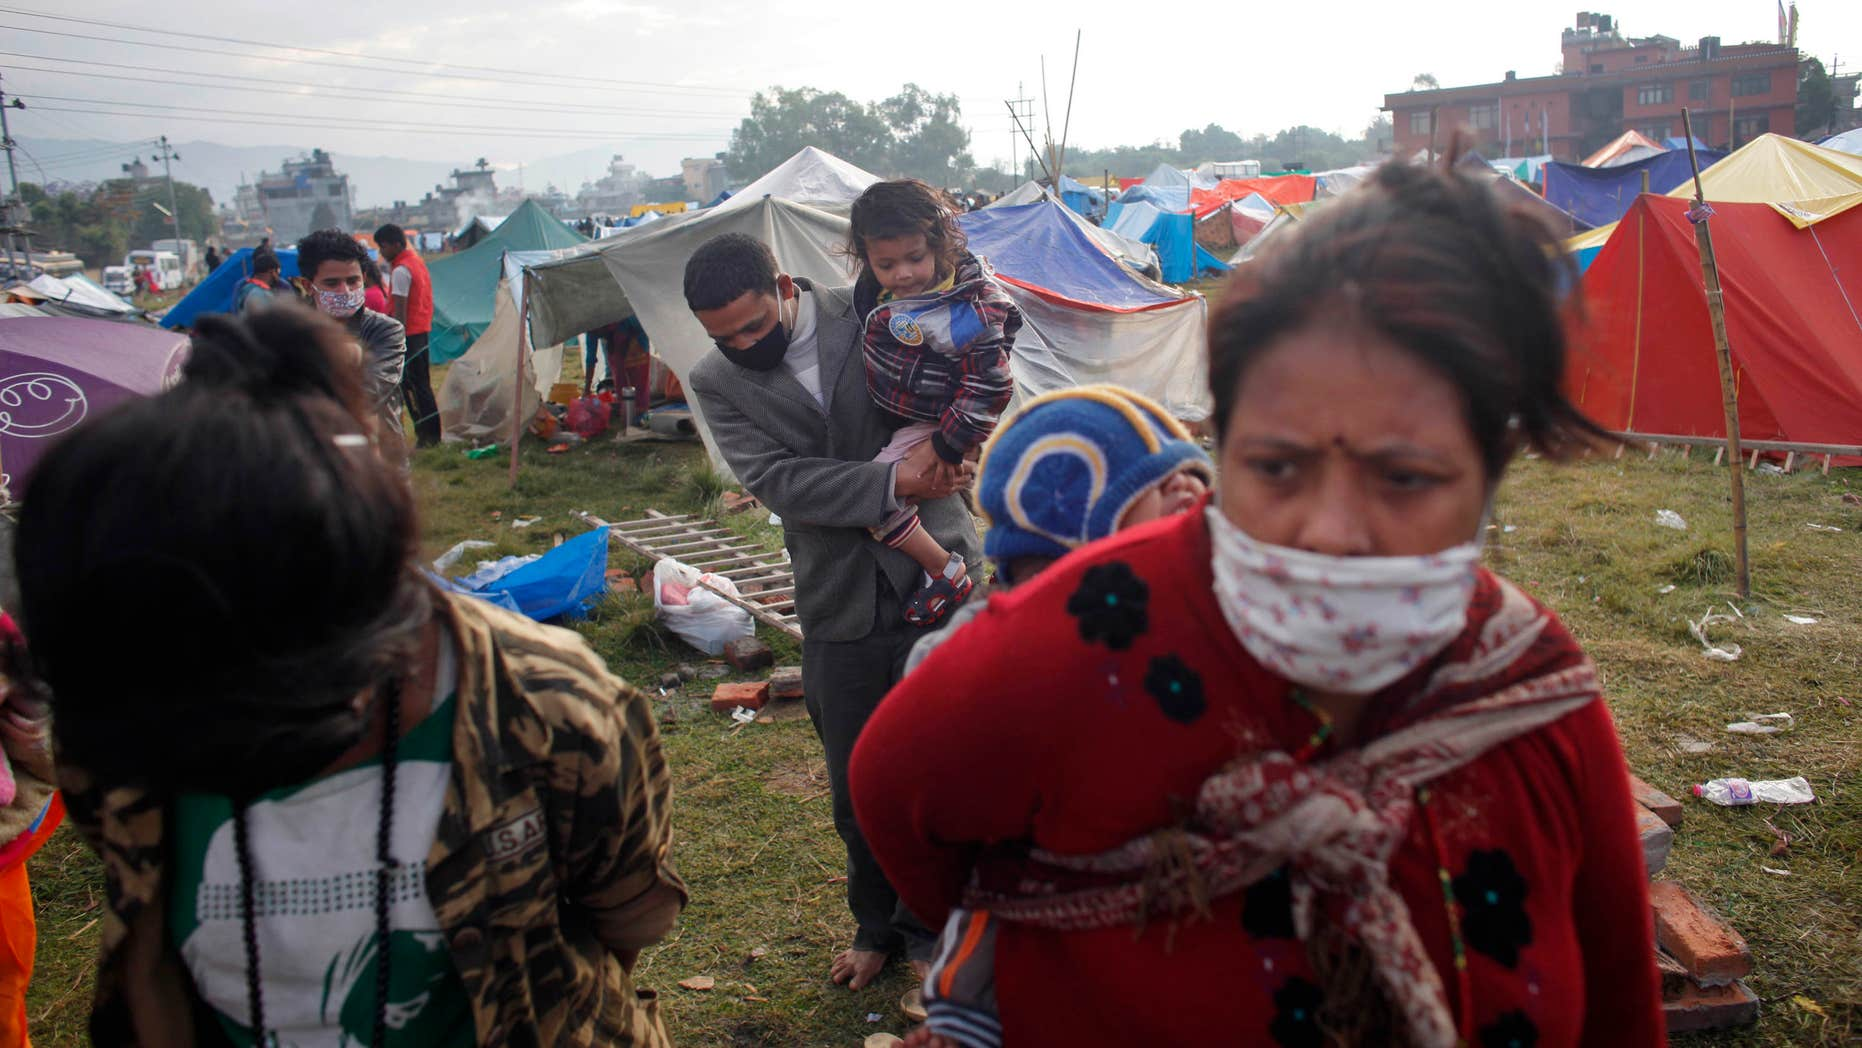 April 29, 2015: Nepalese people prepare to go back home after sleeping on open grounds for four nights to be safe from earthquake in Kathmandu, Nepal.